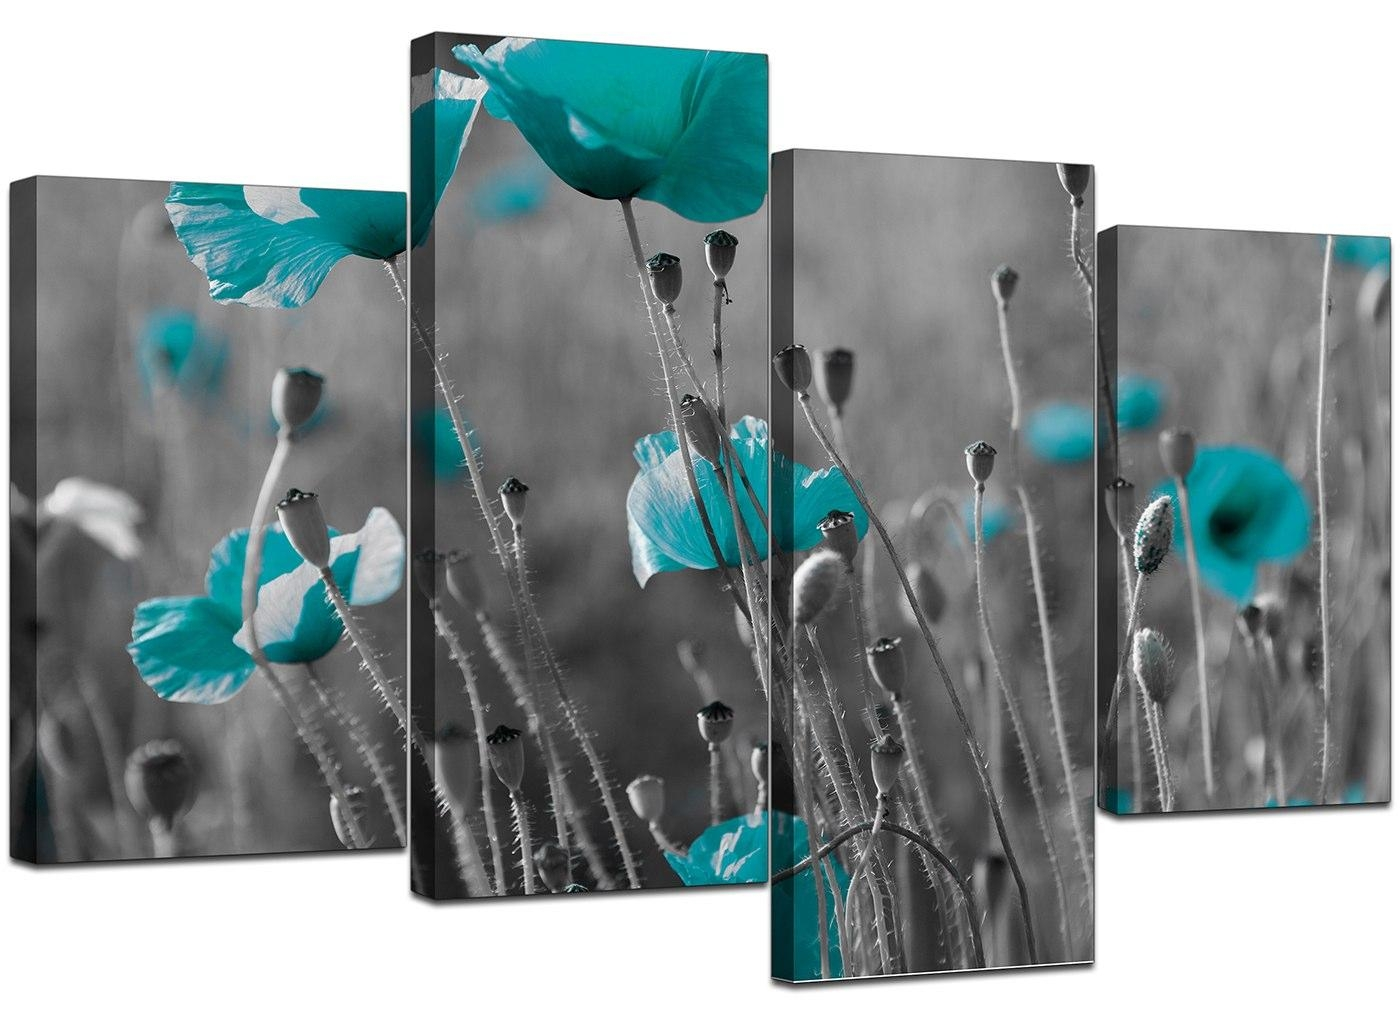 Canvas Art Of Teal Poppies In Black & White For Your Office Throughout Black And Teal Wall Art (Image 4 of 20)